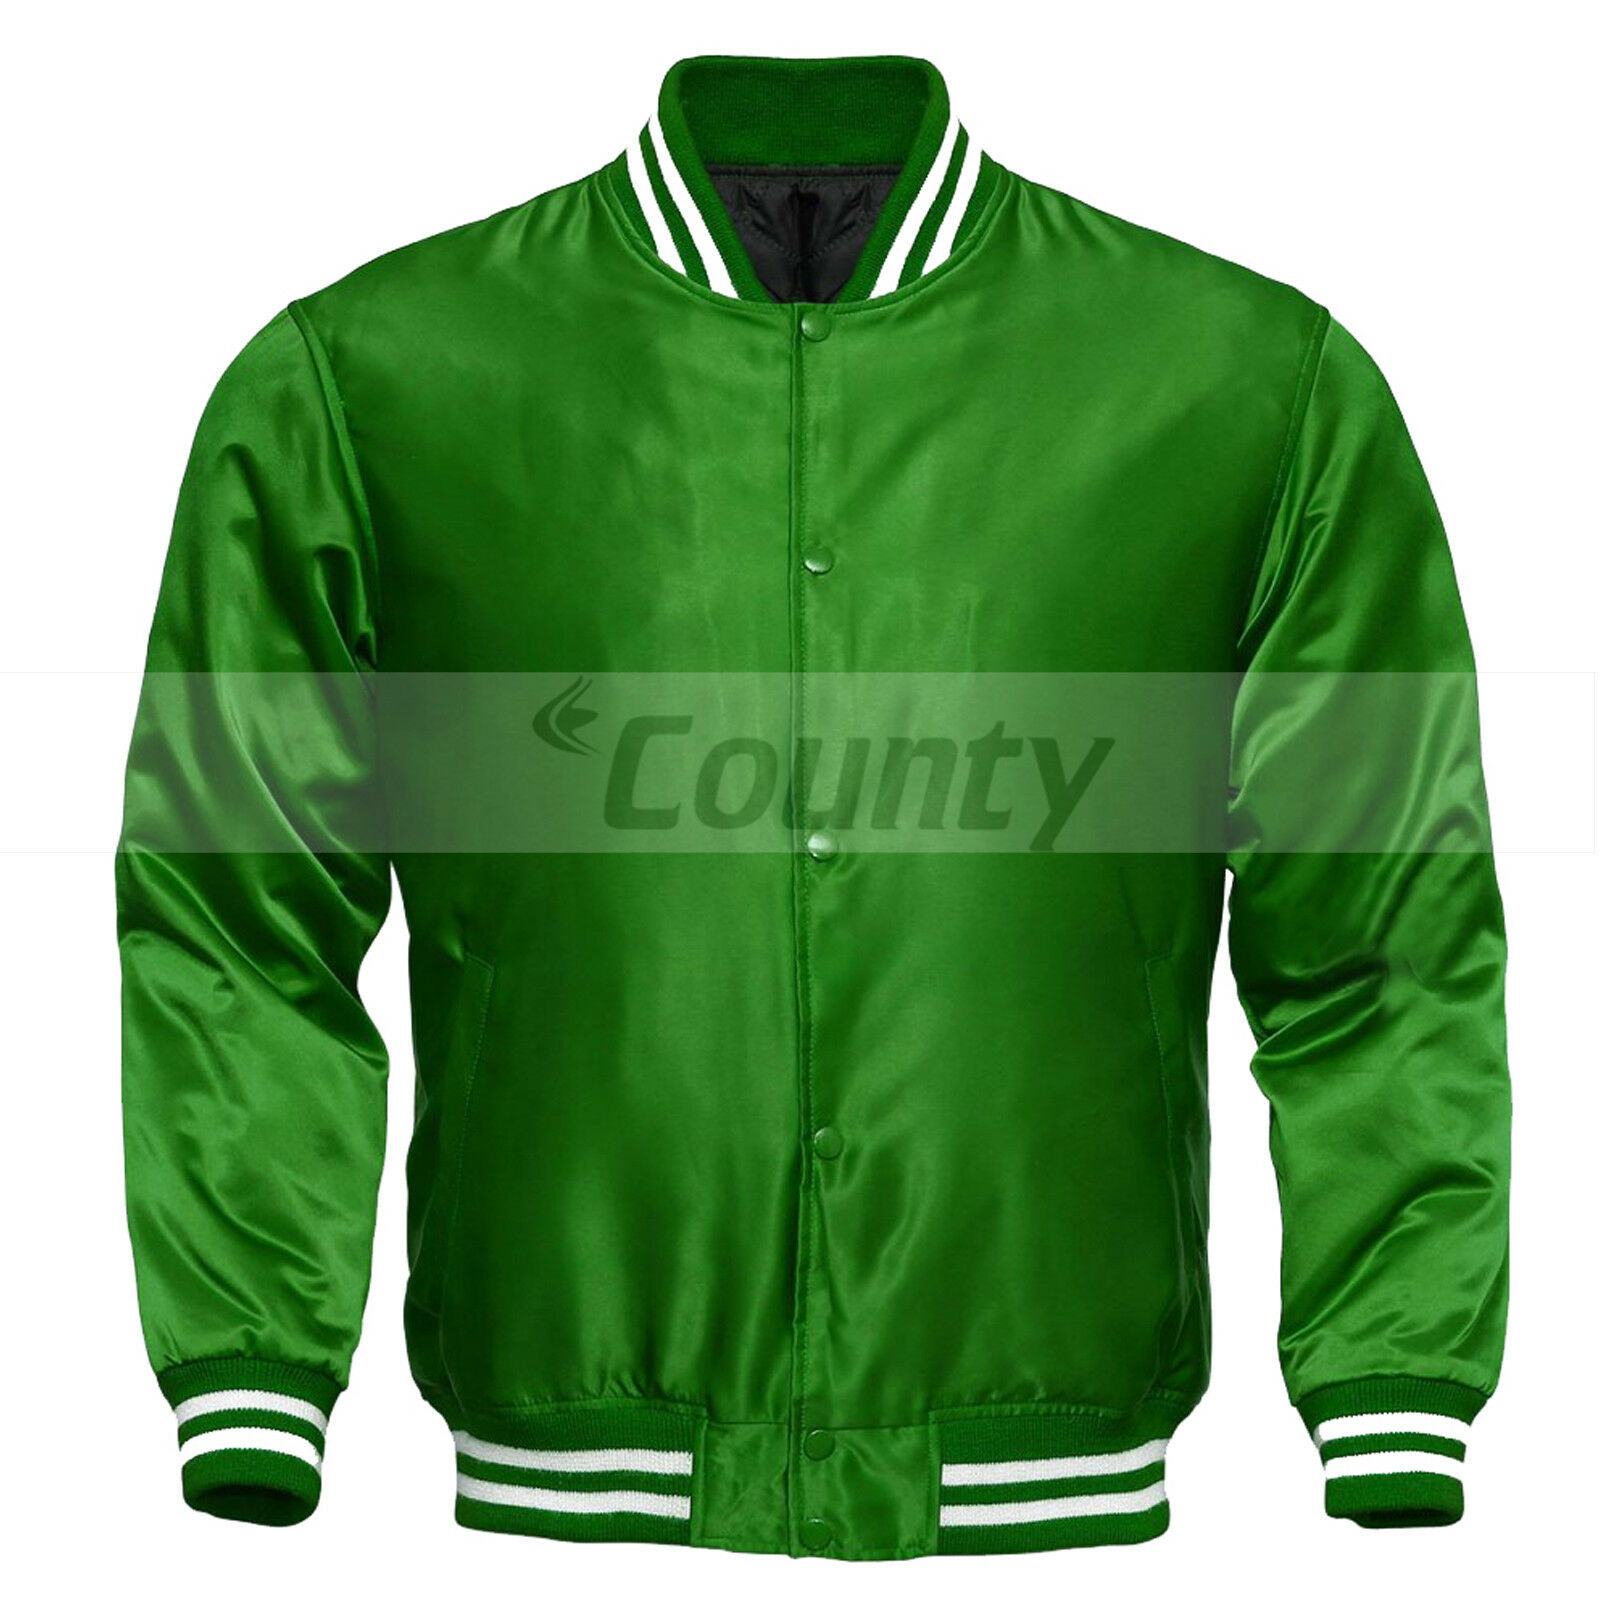 Primary image for Letterman Baseball College Varsity Quality Bomber Jacket Sports Wear Green Satin